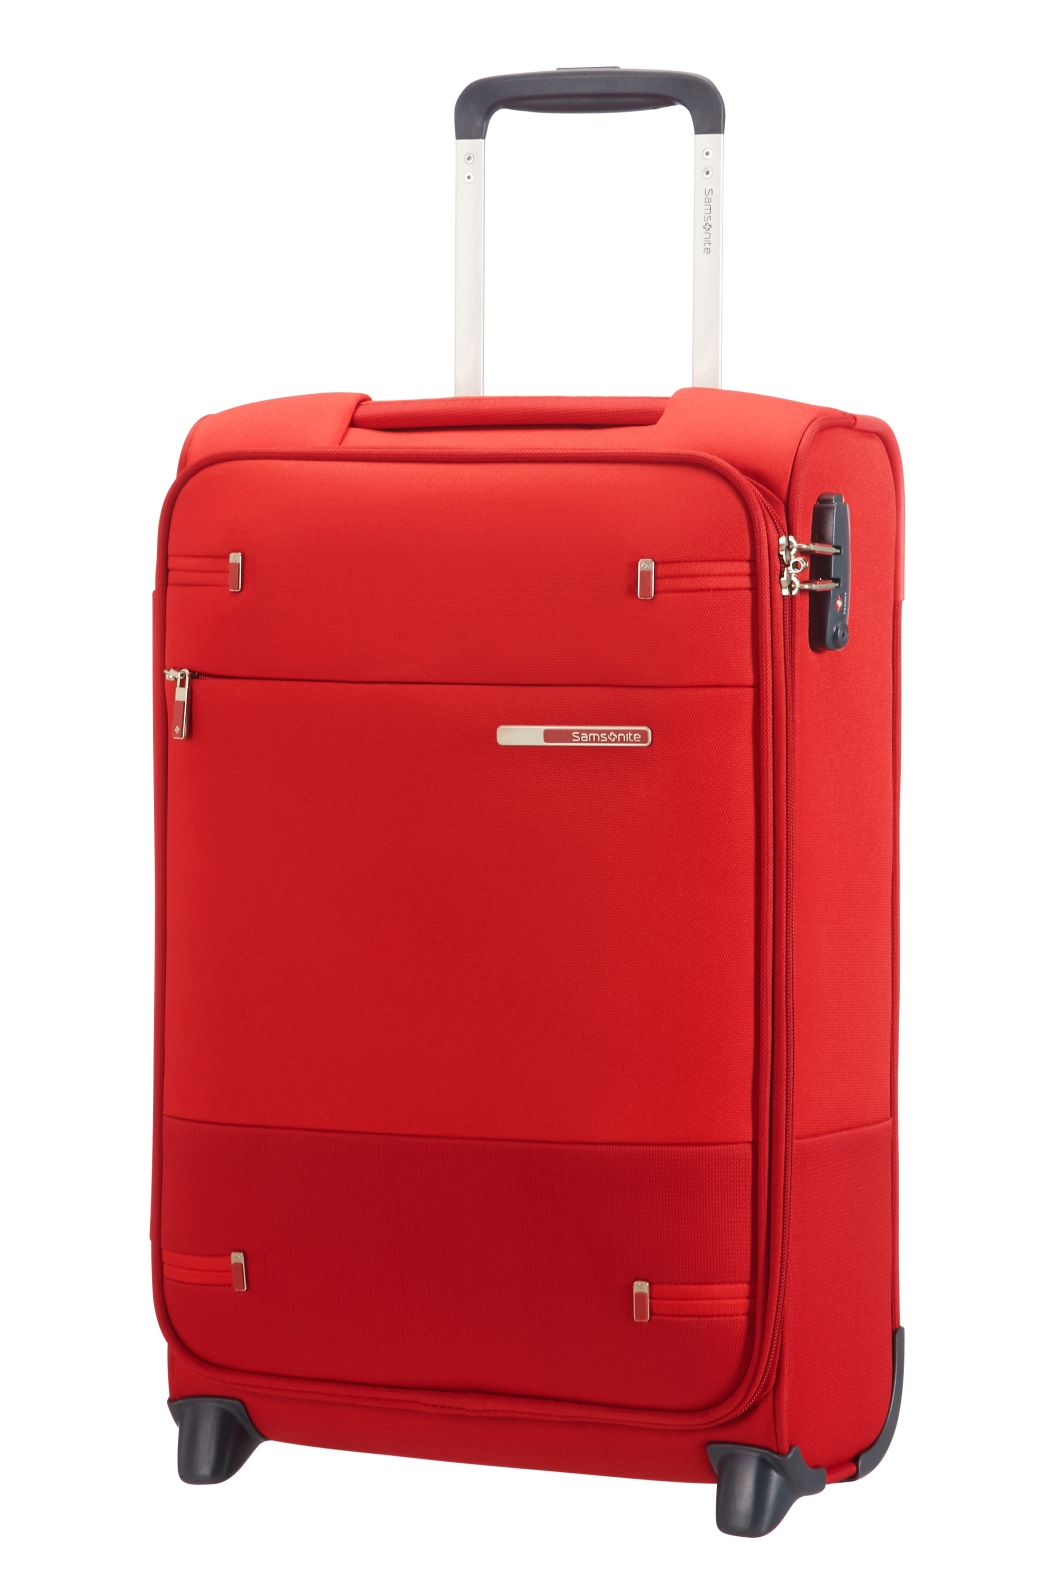 Samsonite Base Boost Upright luggage in red